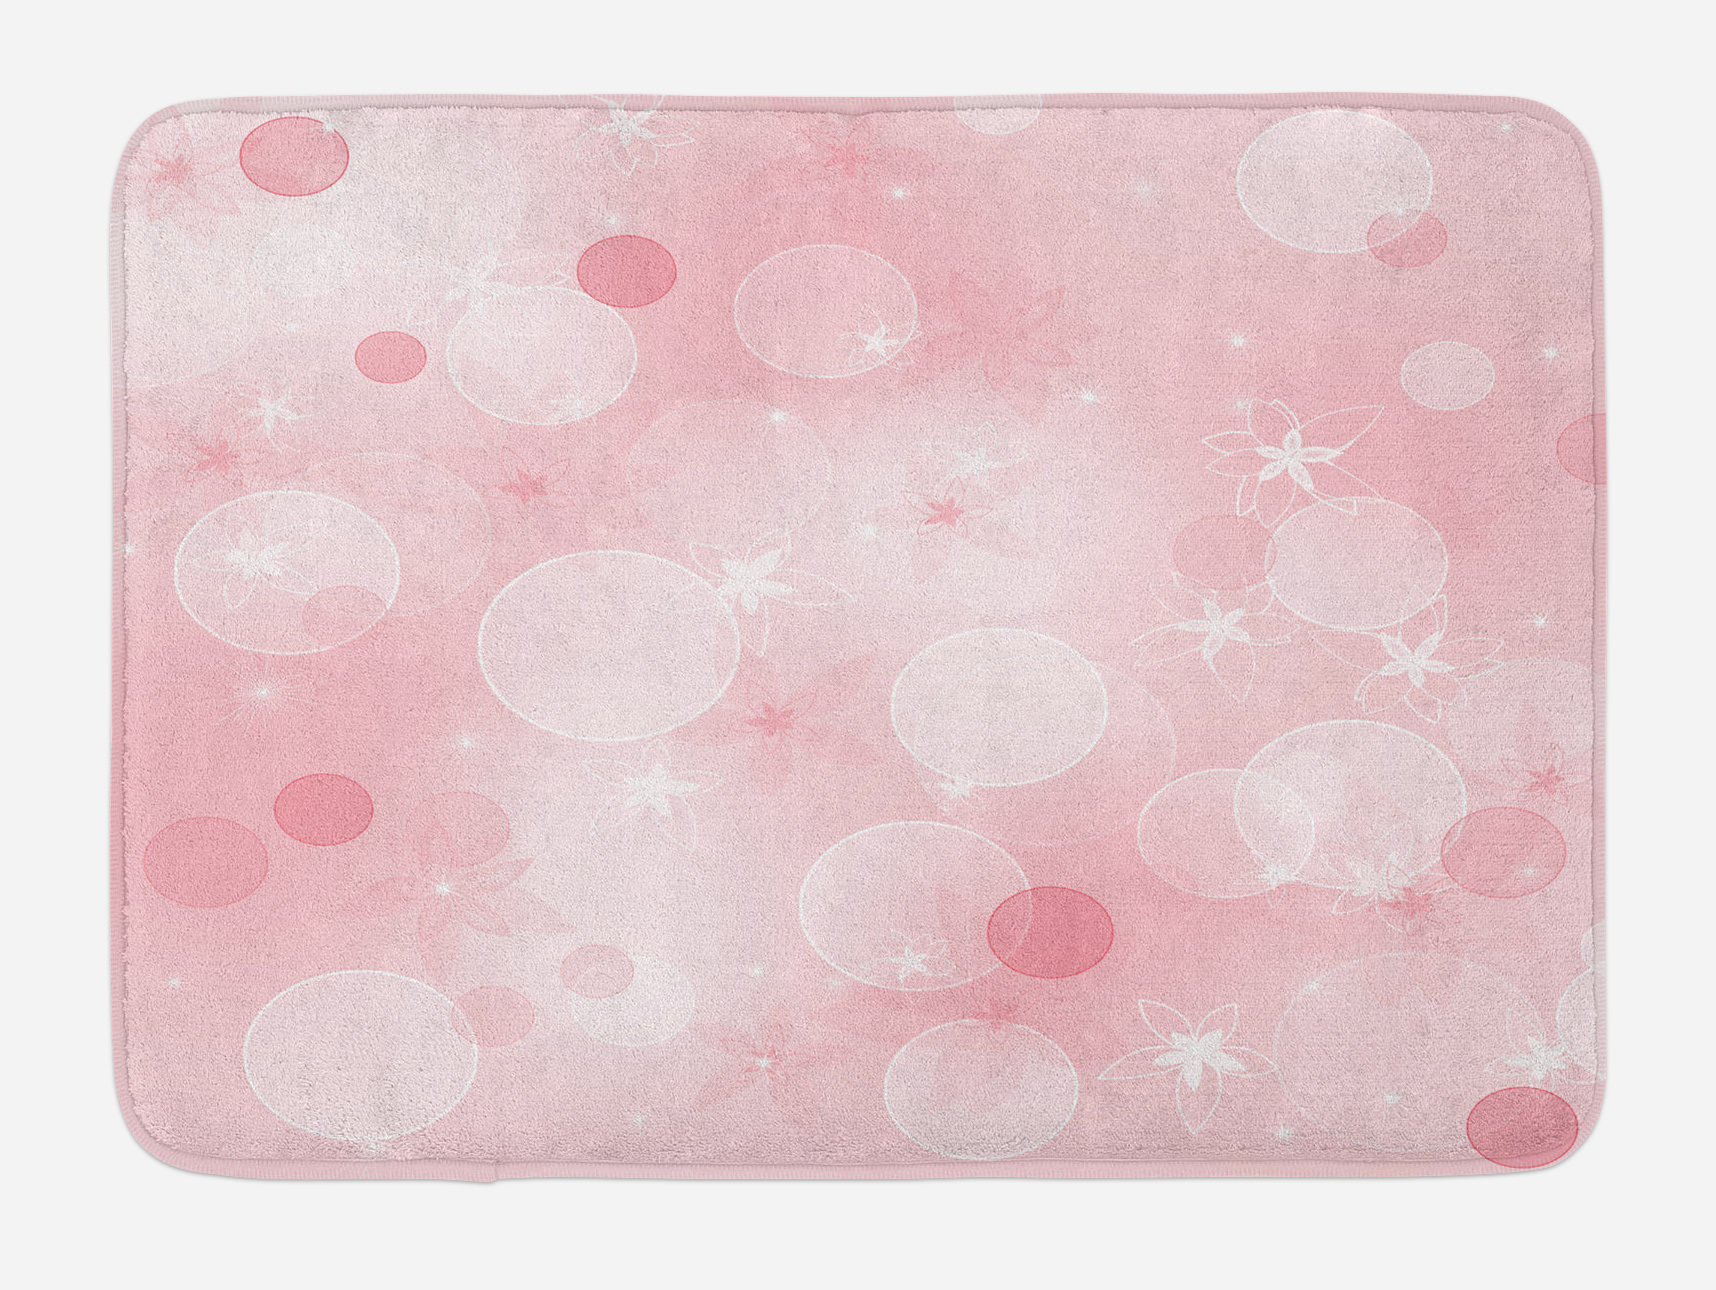 Pastel Pink Kitchen Accessories Light Pink Bath Mat Floral Background With Hazy Bubbles